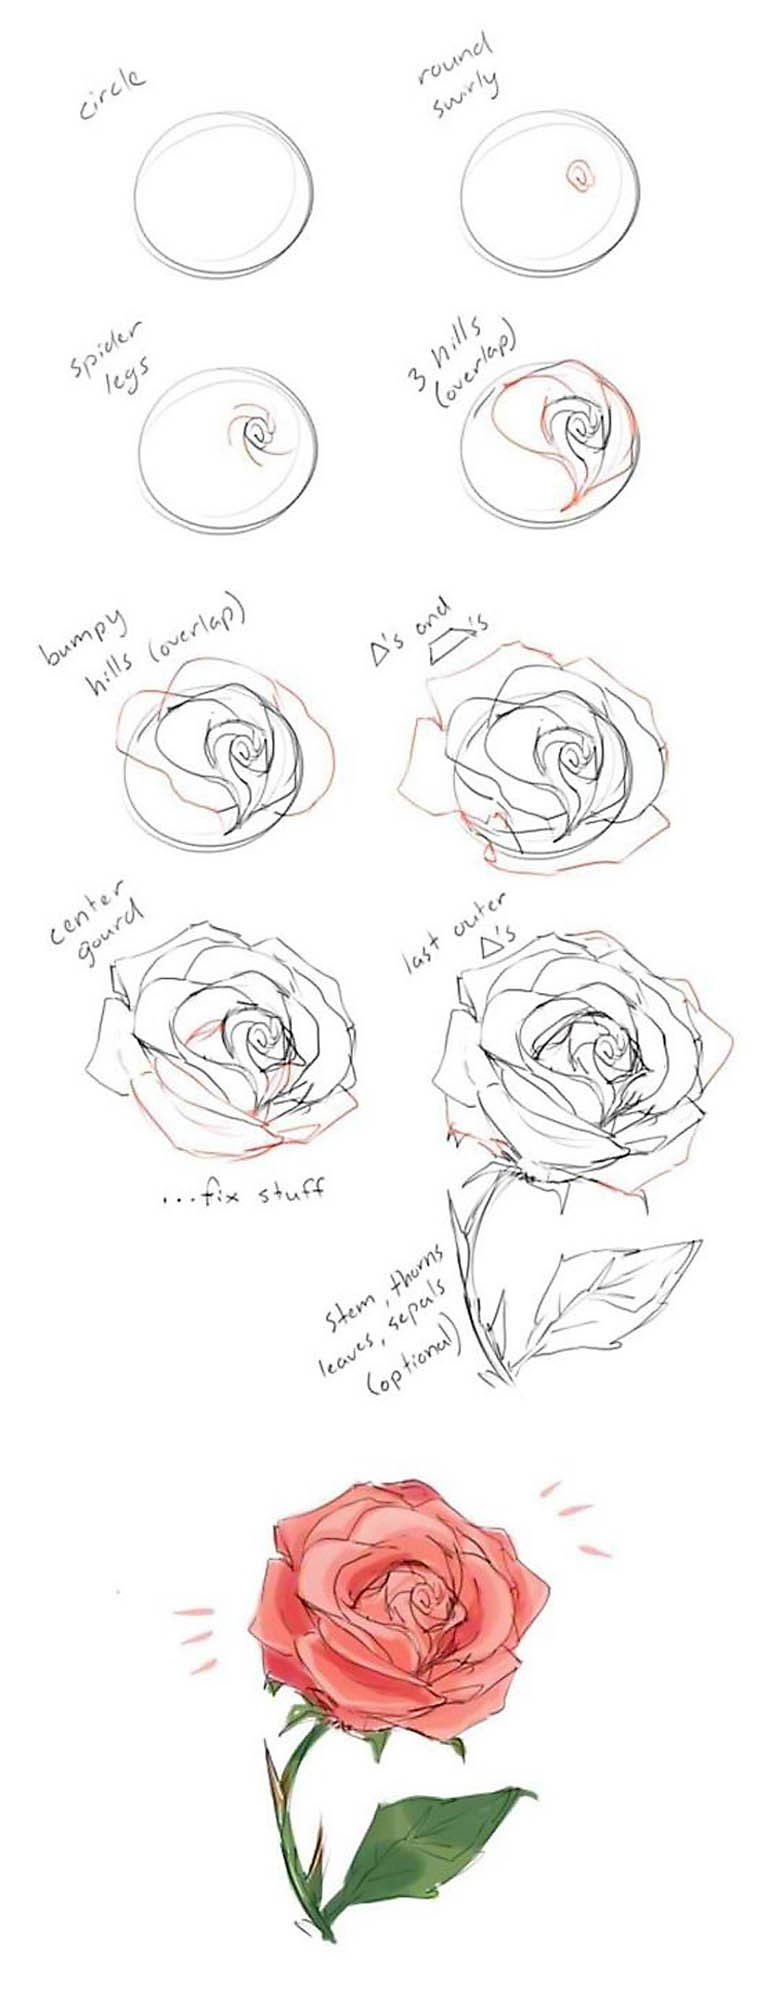 How to draw a rose step by step drawing guide learn how to draw flowers